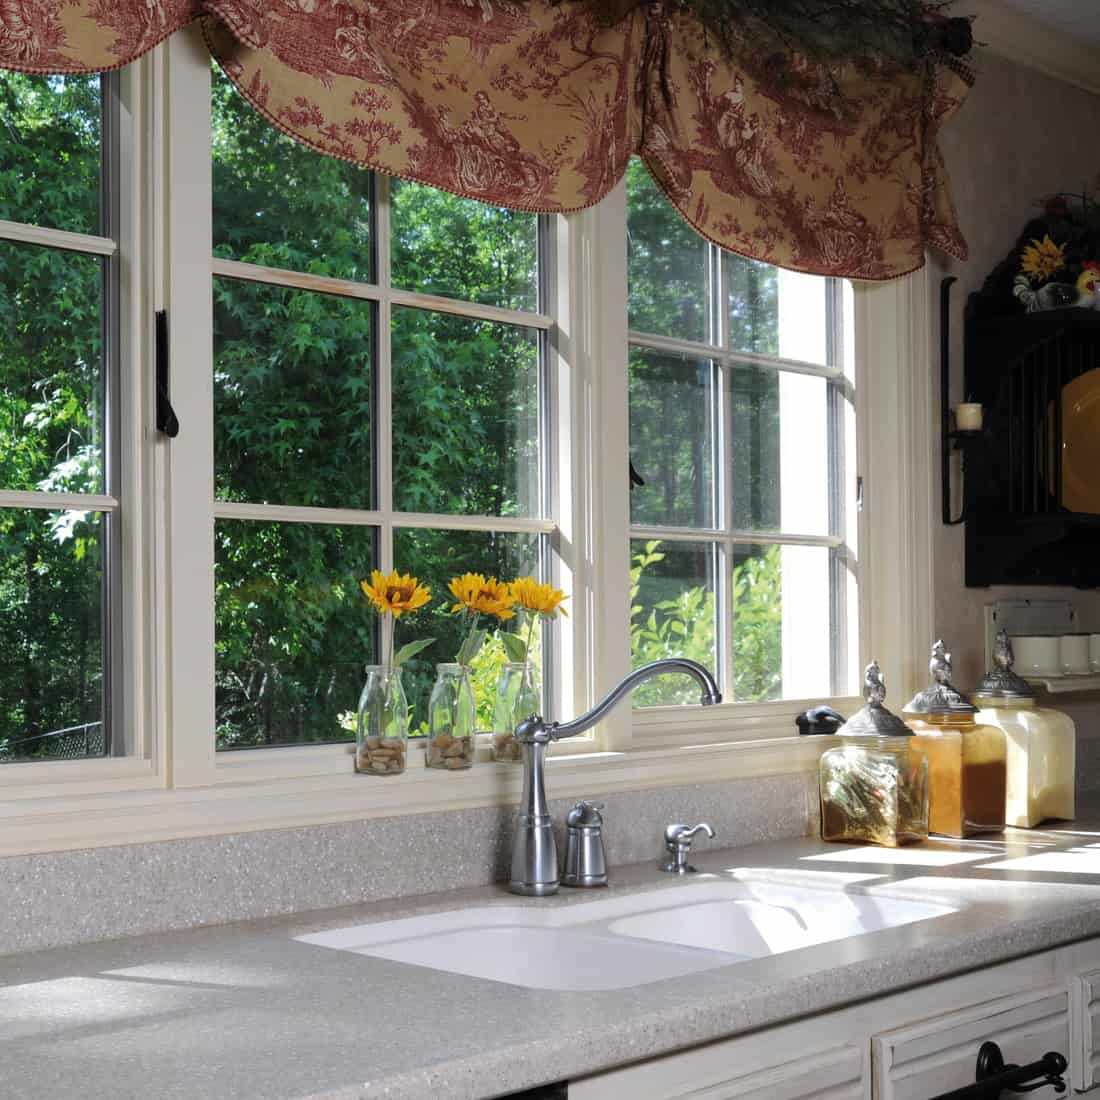 Kitchen with a country feel and classic valance curtains